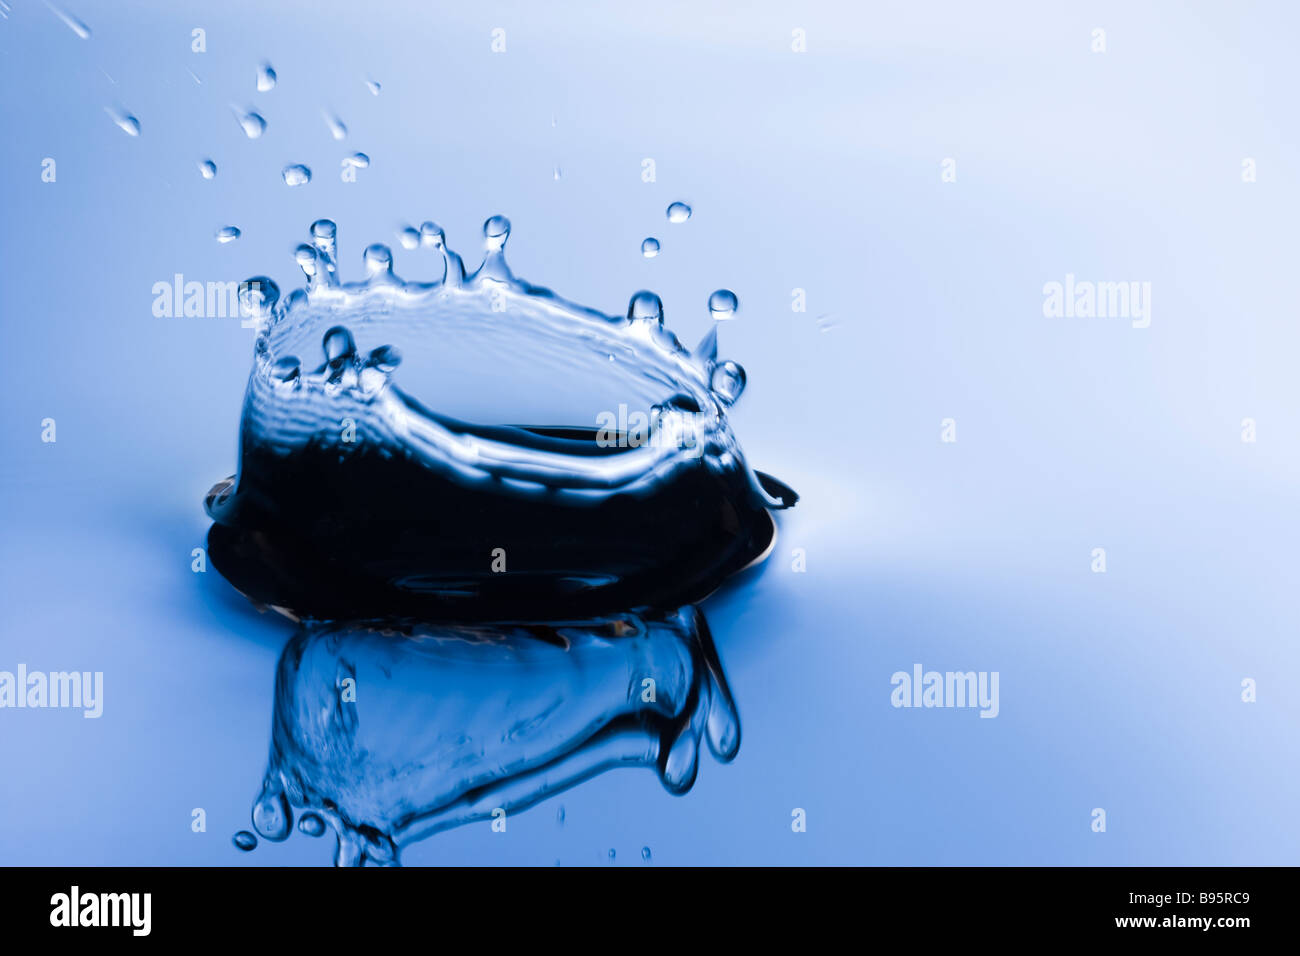 Splash dans l'eau Photo Stock